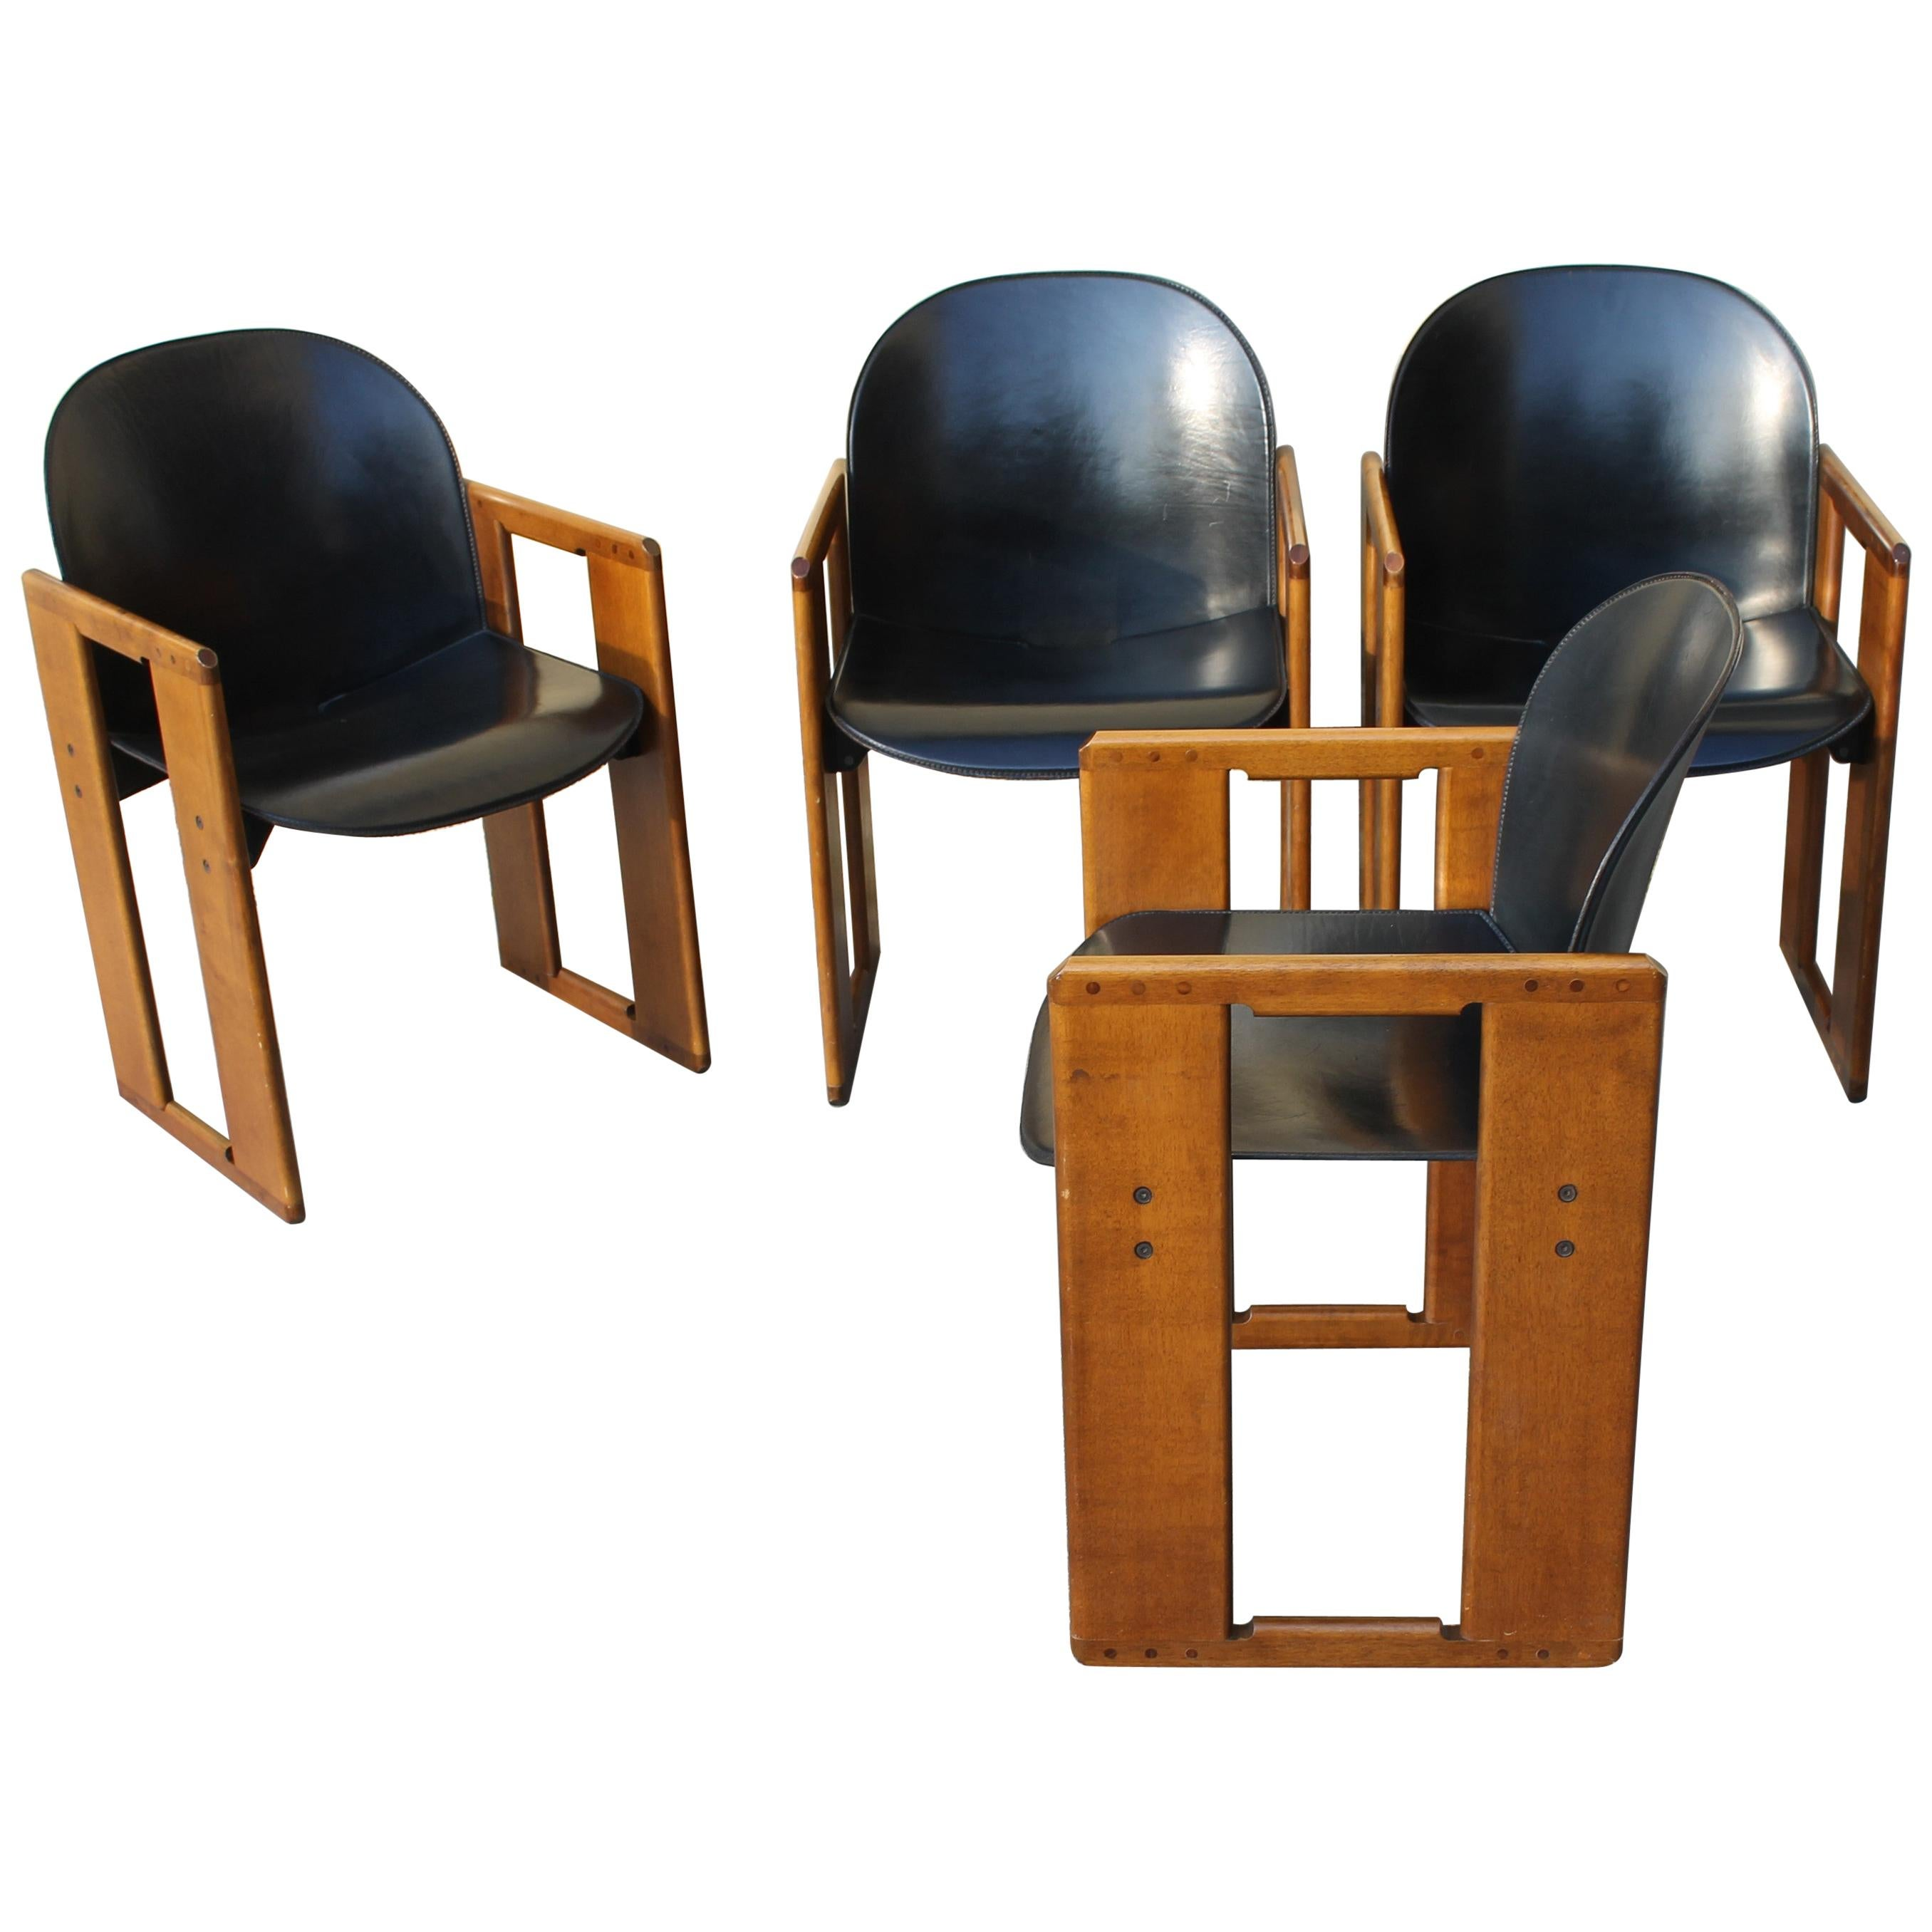 """Set of Four """"Dialogo"""" Black Leather Chairs by Tobia Scarpa for B&B, Italy, 70s"""